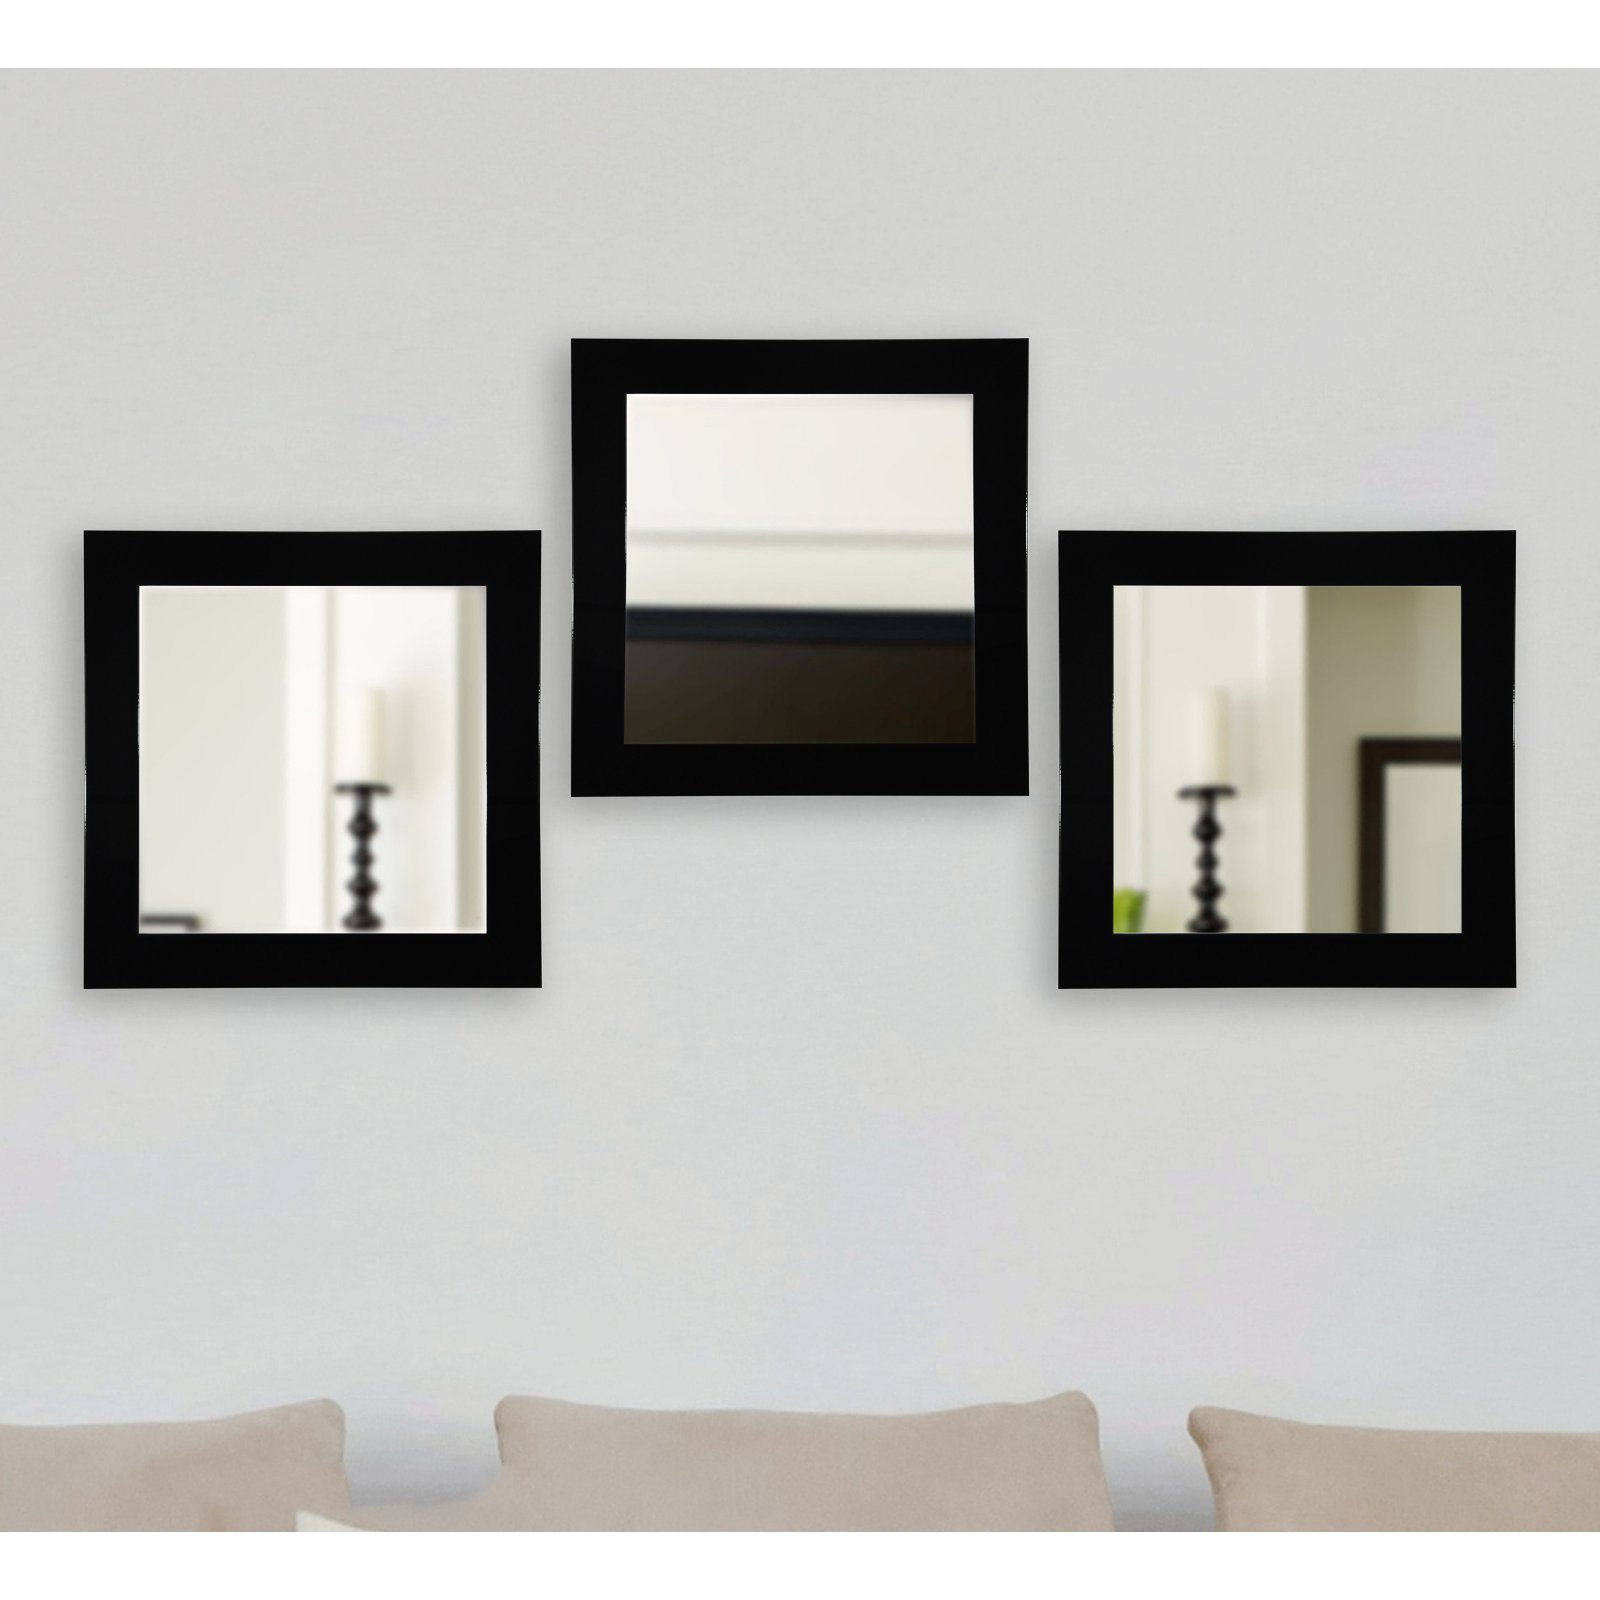 Rayne Mirrors Delta Square Wall Mirror Set of 3 by Overstock